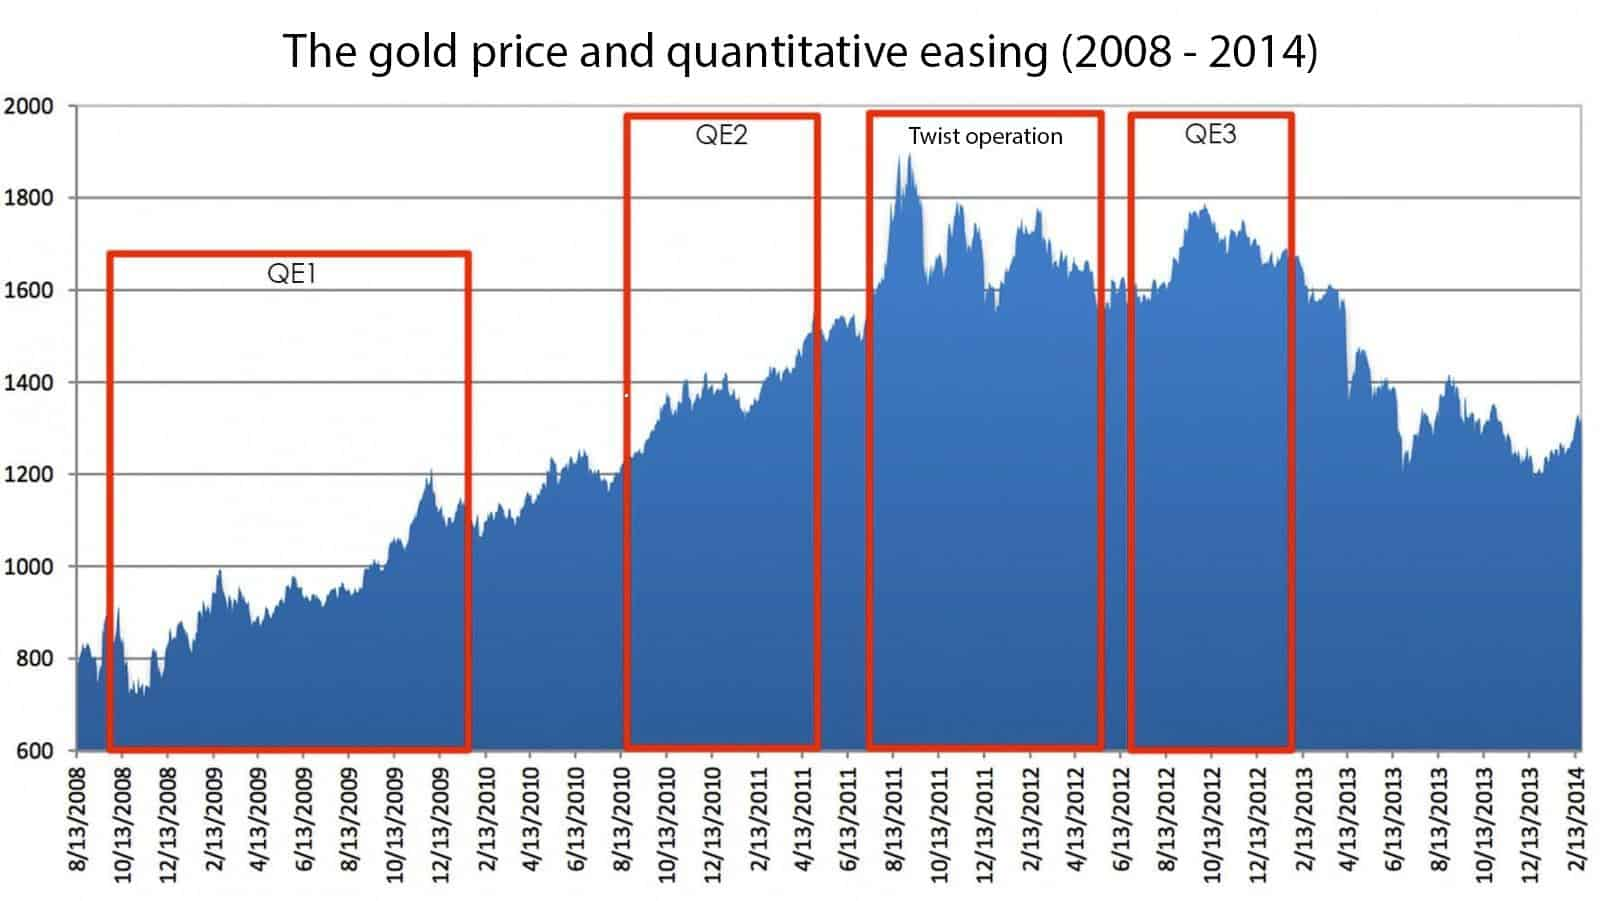 The gold price and quantitative easing (2008 - 2014)